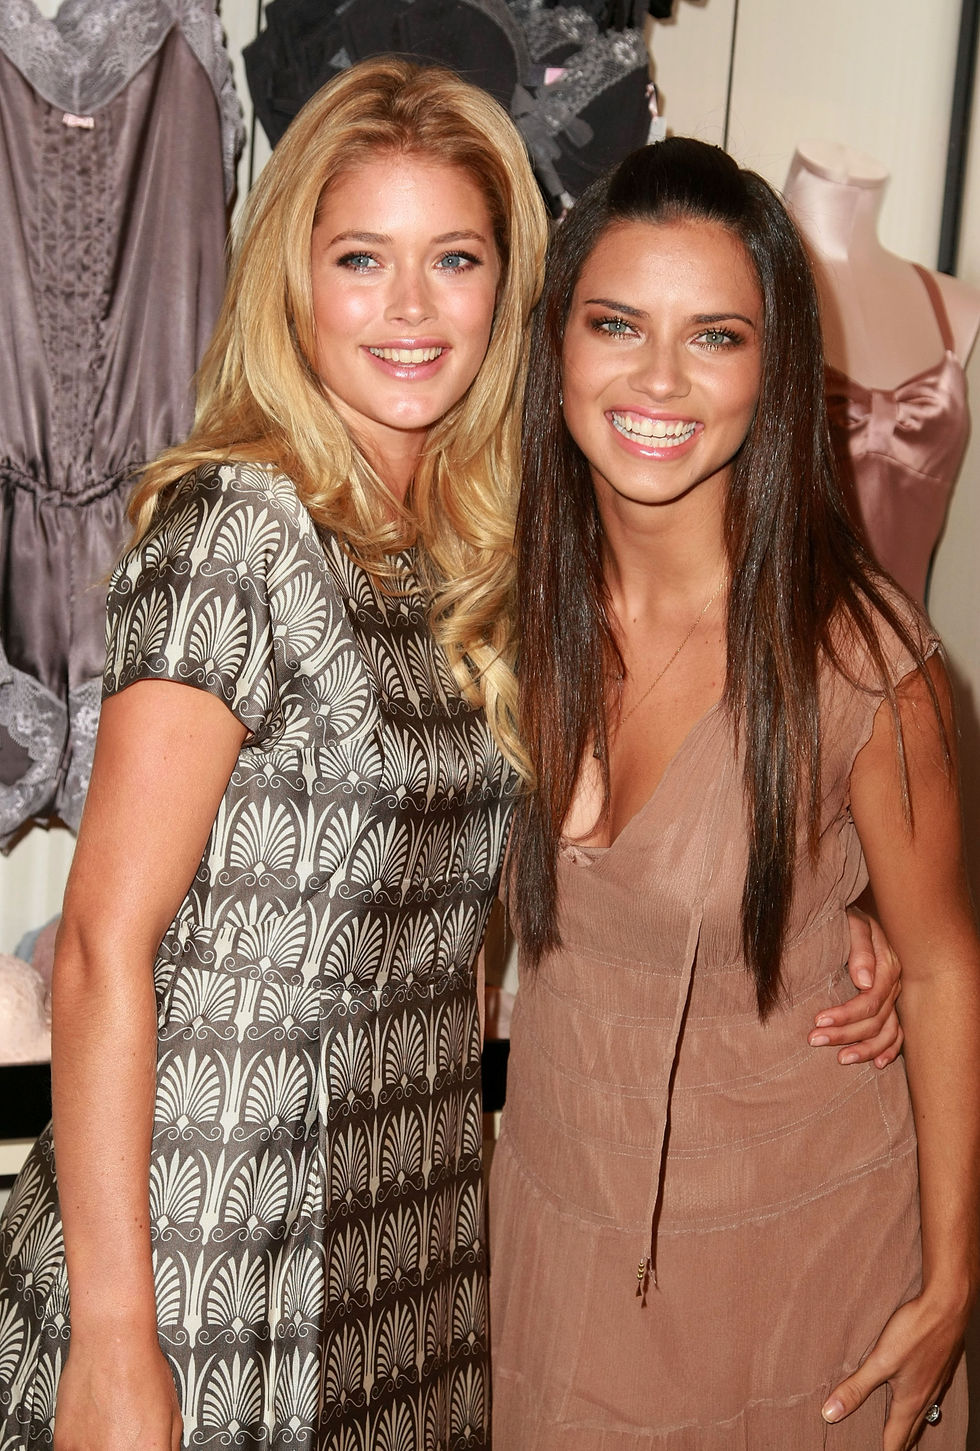 adriana-lima-and-doutzen-kroes-supermodel-obsessions-launch-at-victorias-secret-in-new-york-01